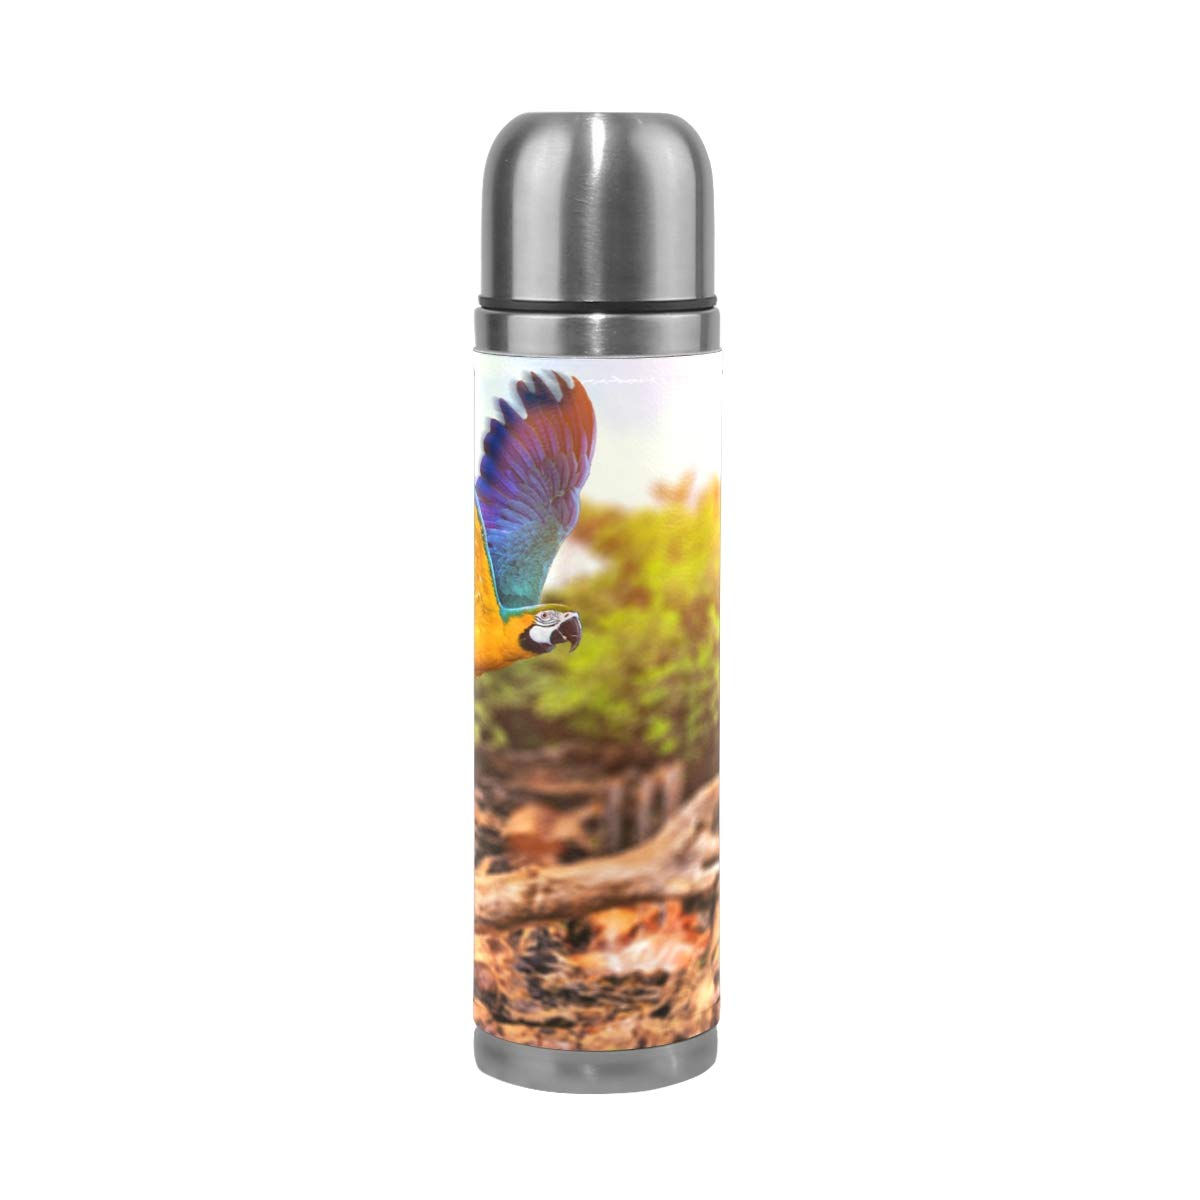 Sunlight Forest Birds Animals Nature Parrot 500ML Stainless Steel Double Walled vacuum insulated water bottle Travel Mug Leather Cover Thermos 17 oz